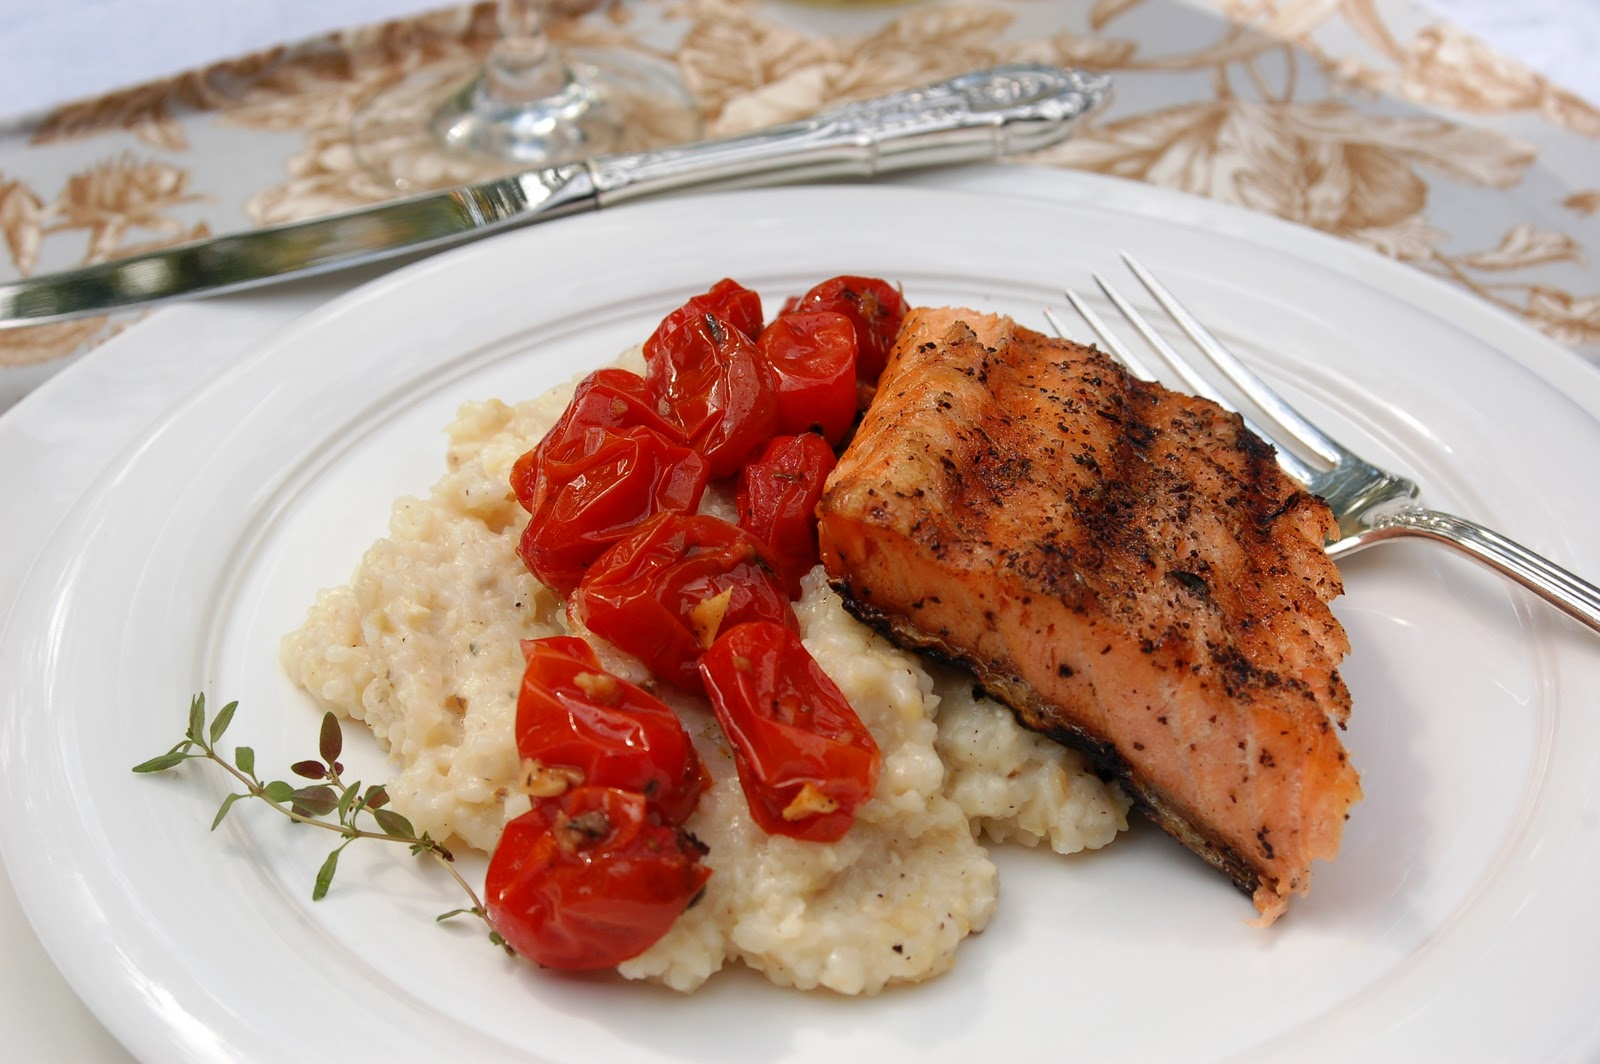 Grilled Salmon With Roasted Cherry Tomatoes And Parmesan